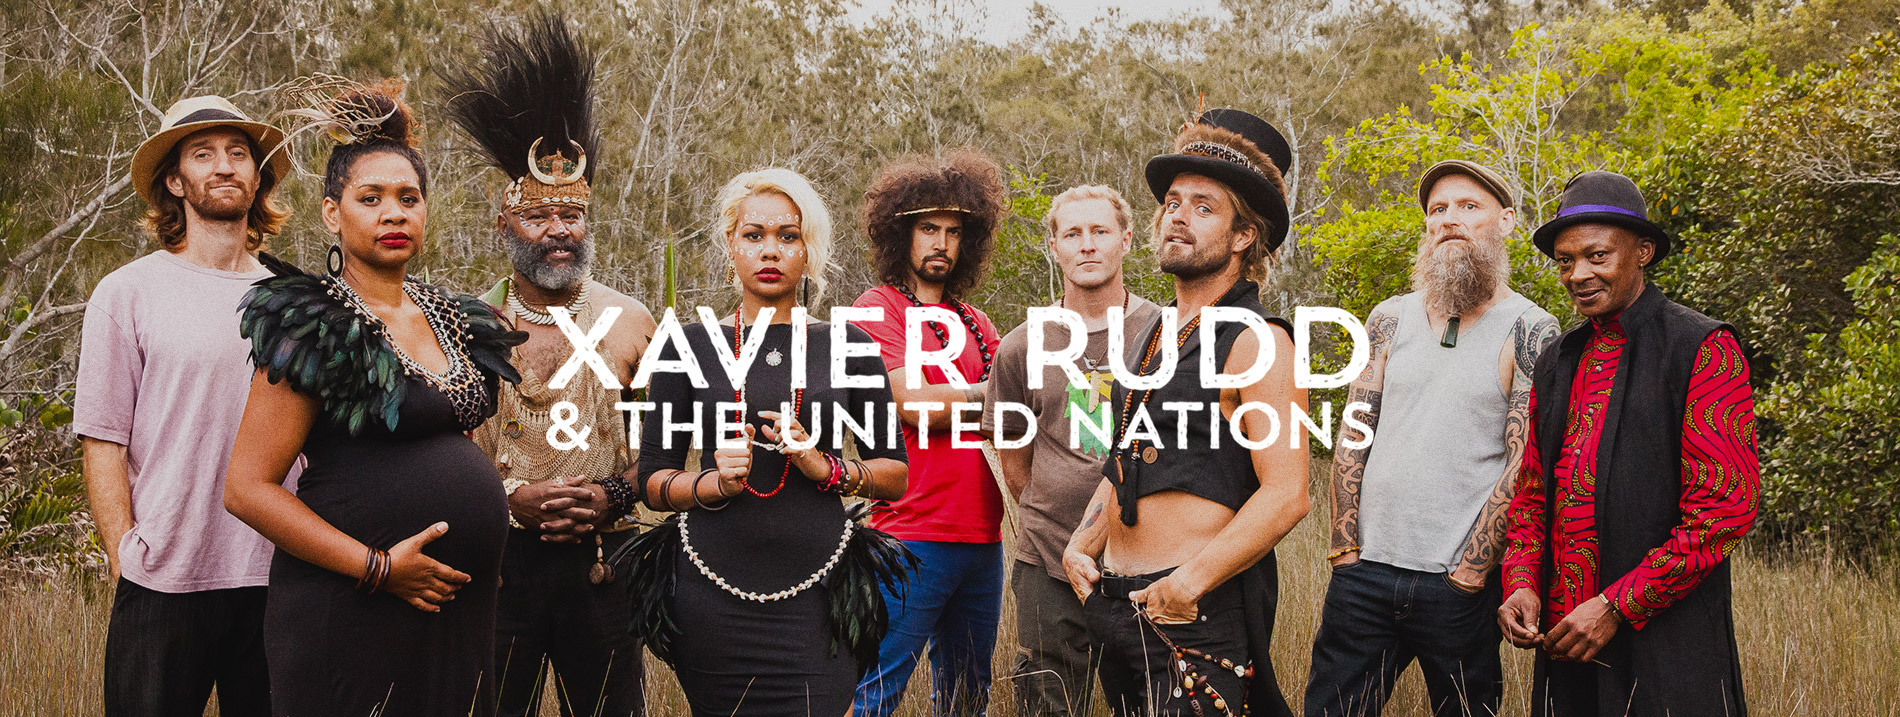 Xavier Rudd & The United Nations Tour 2015